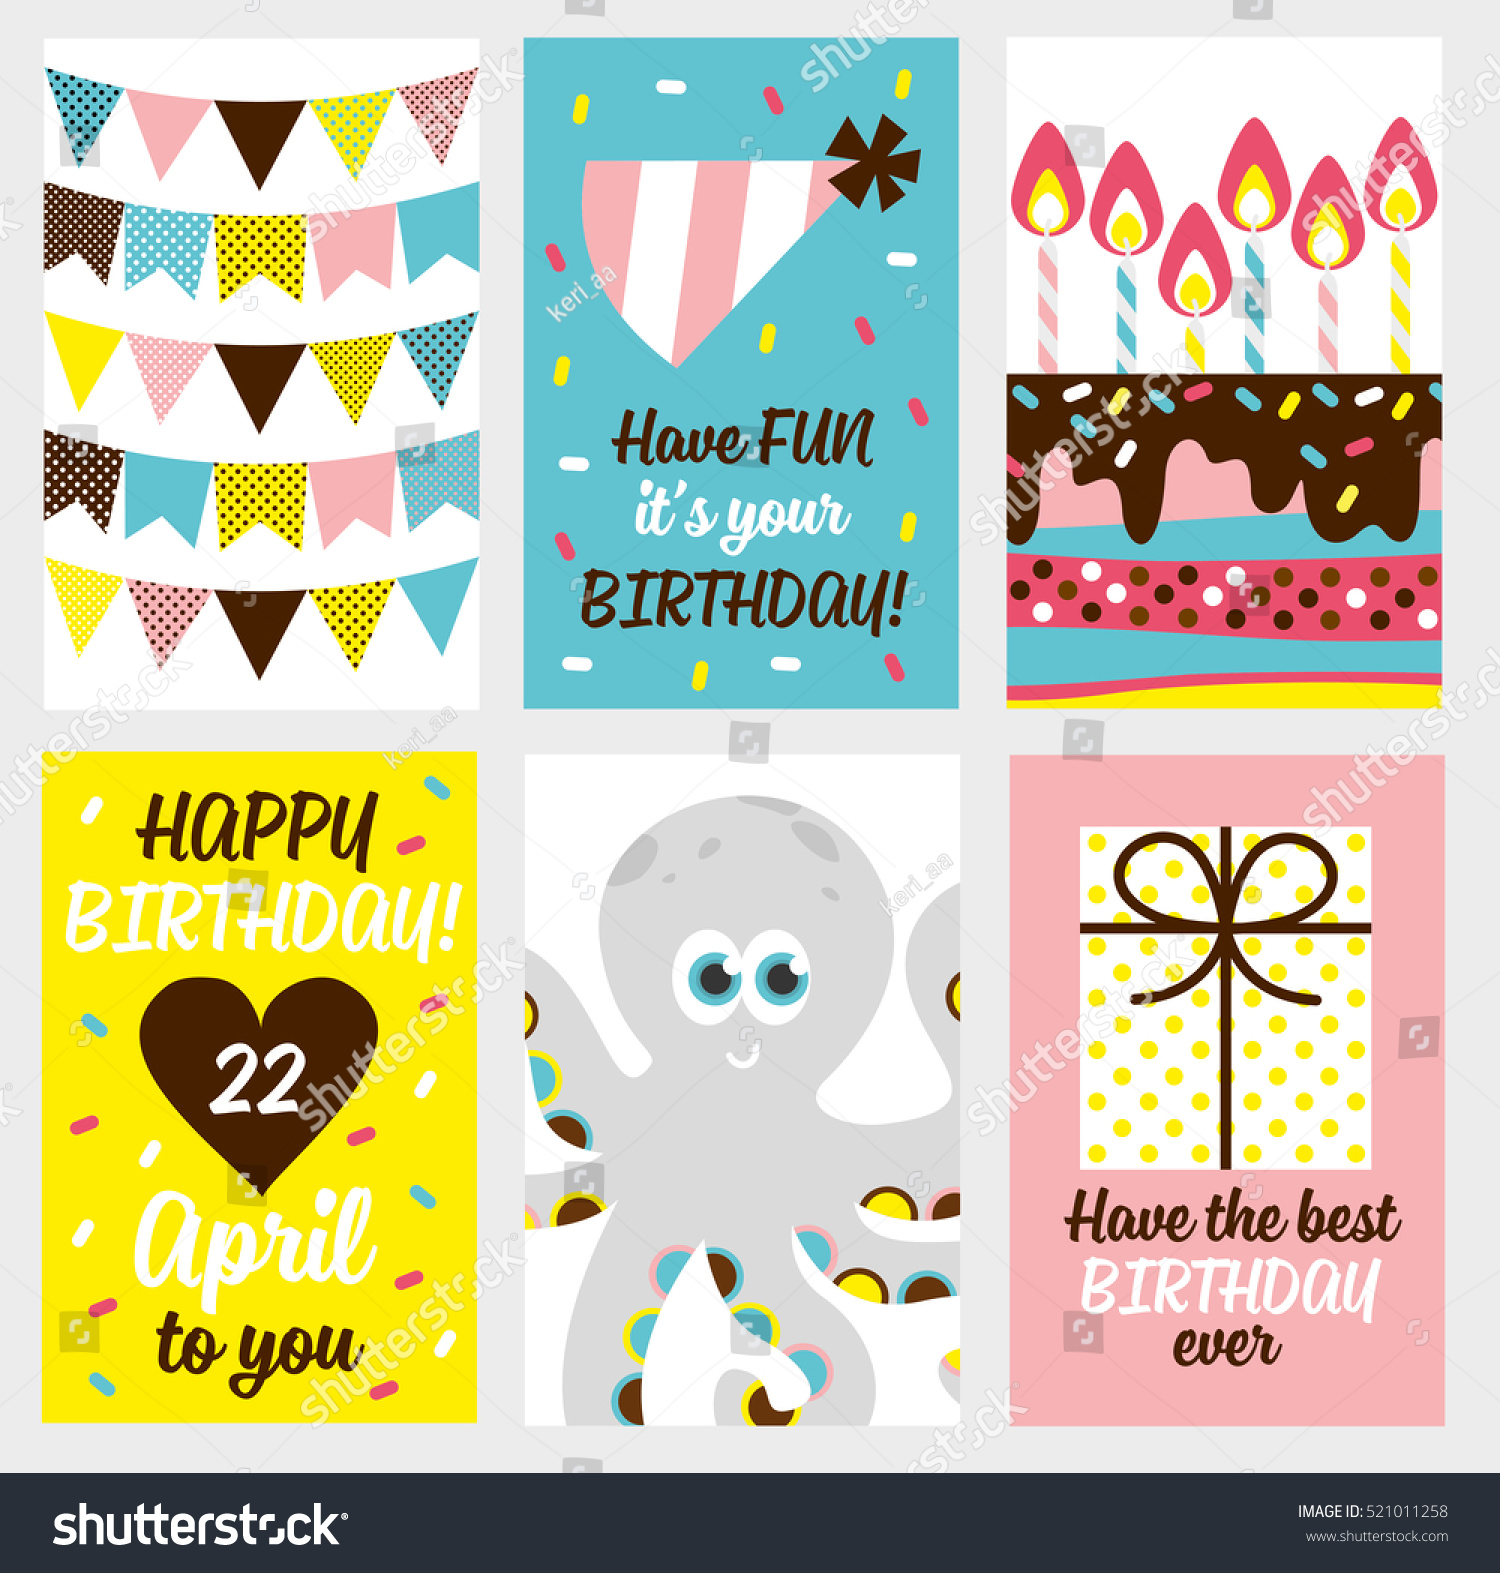 6 Birthday Card Templates: Set 6 Cute Creative Cards Templates Stock Vector 521011258